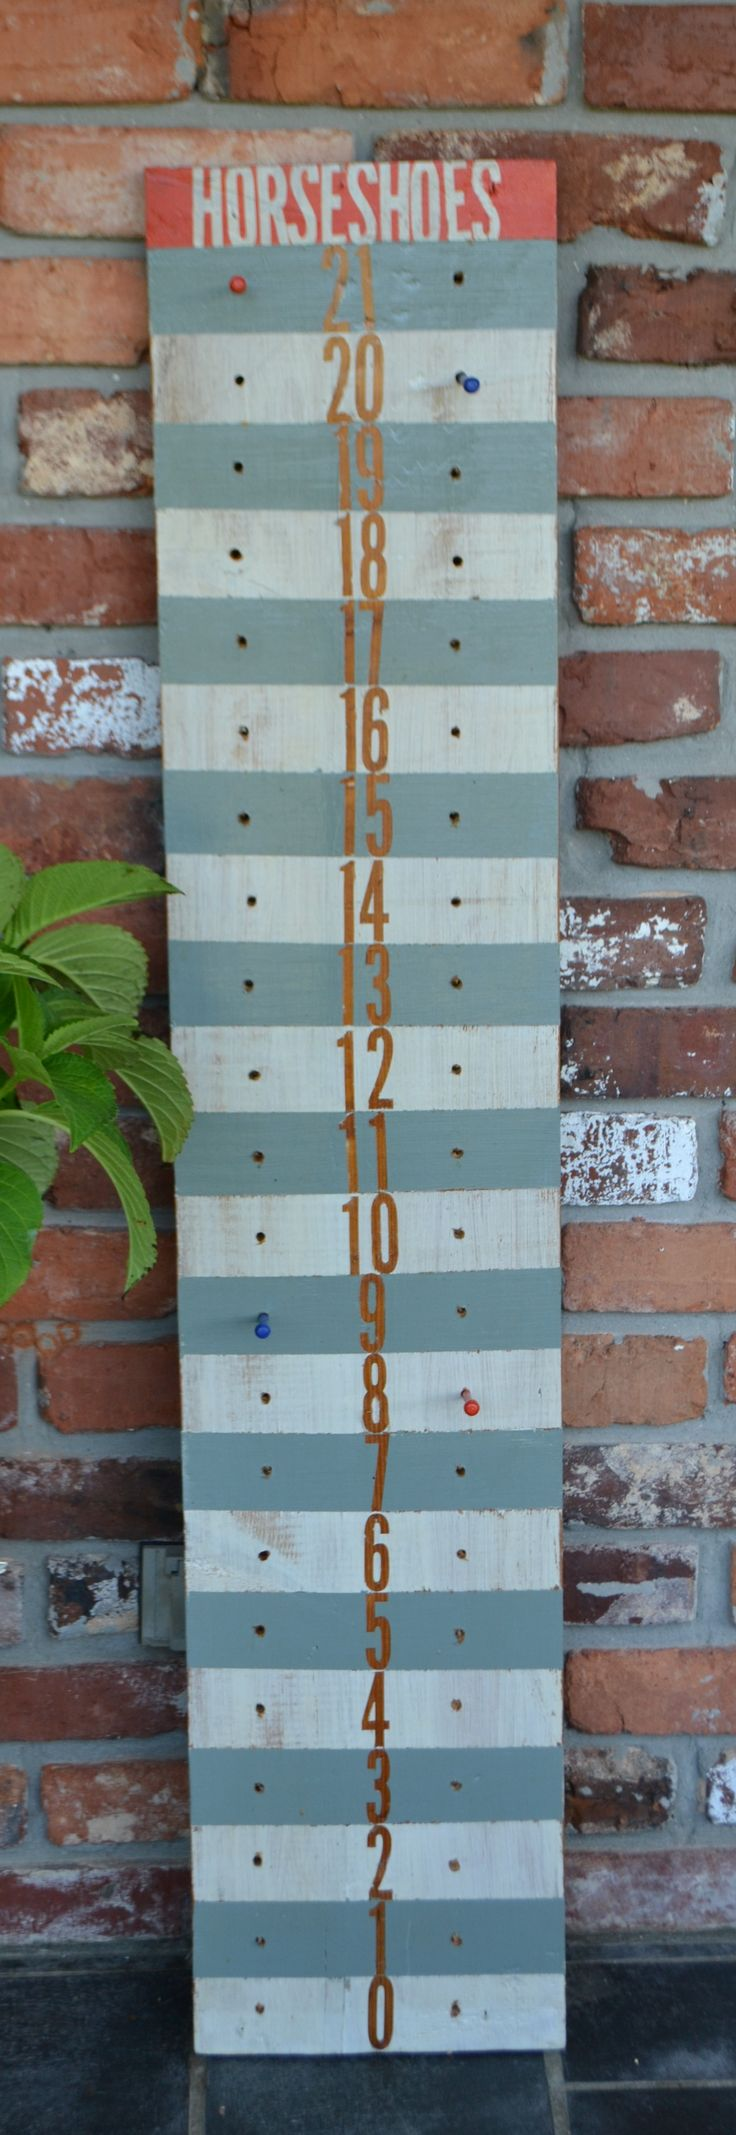 best 25 horseshoe decorations ideas on pinterest horse shoes horseshoe gameboard scoreboard